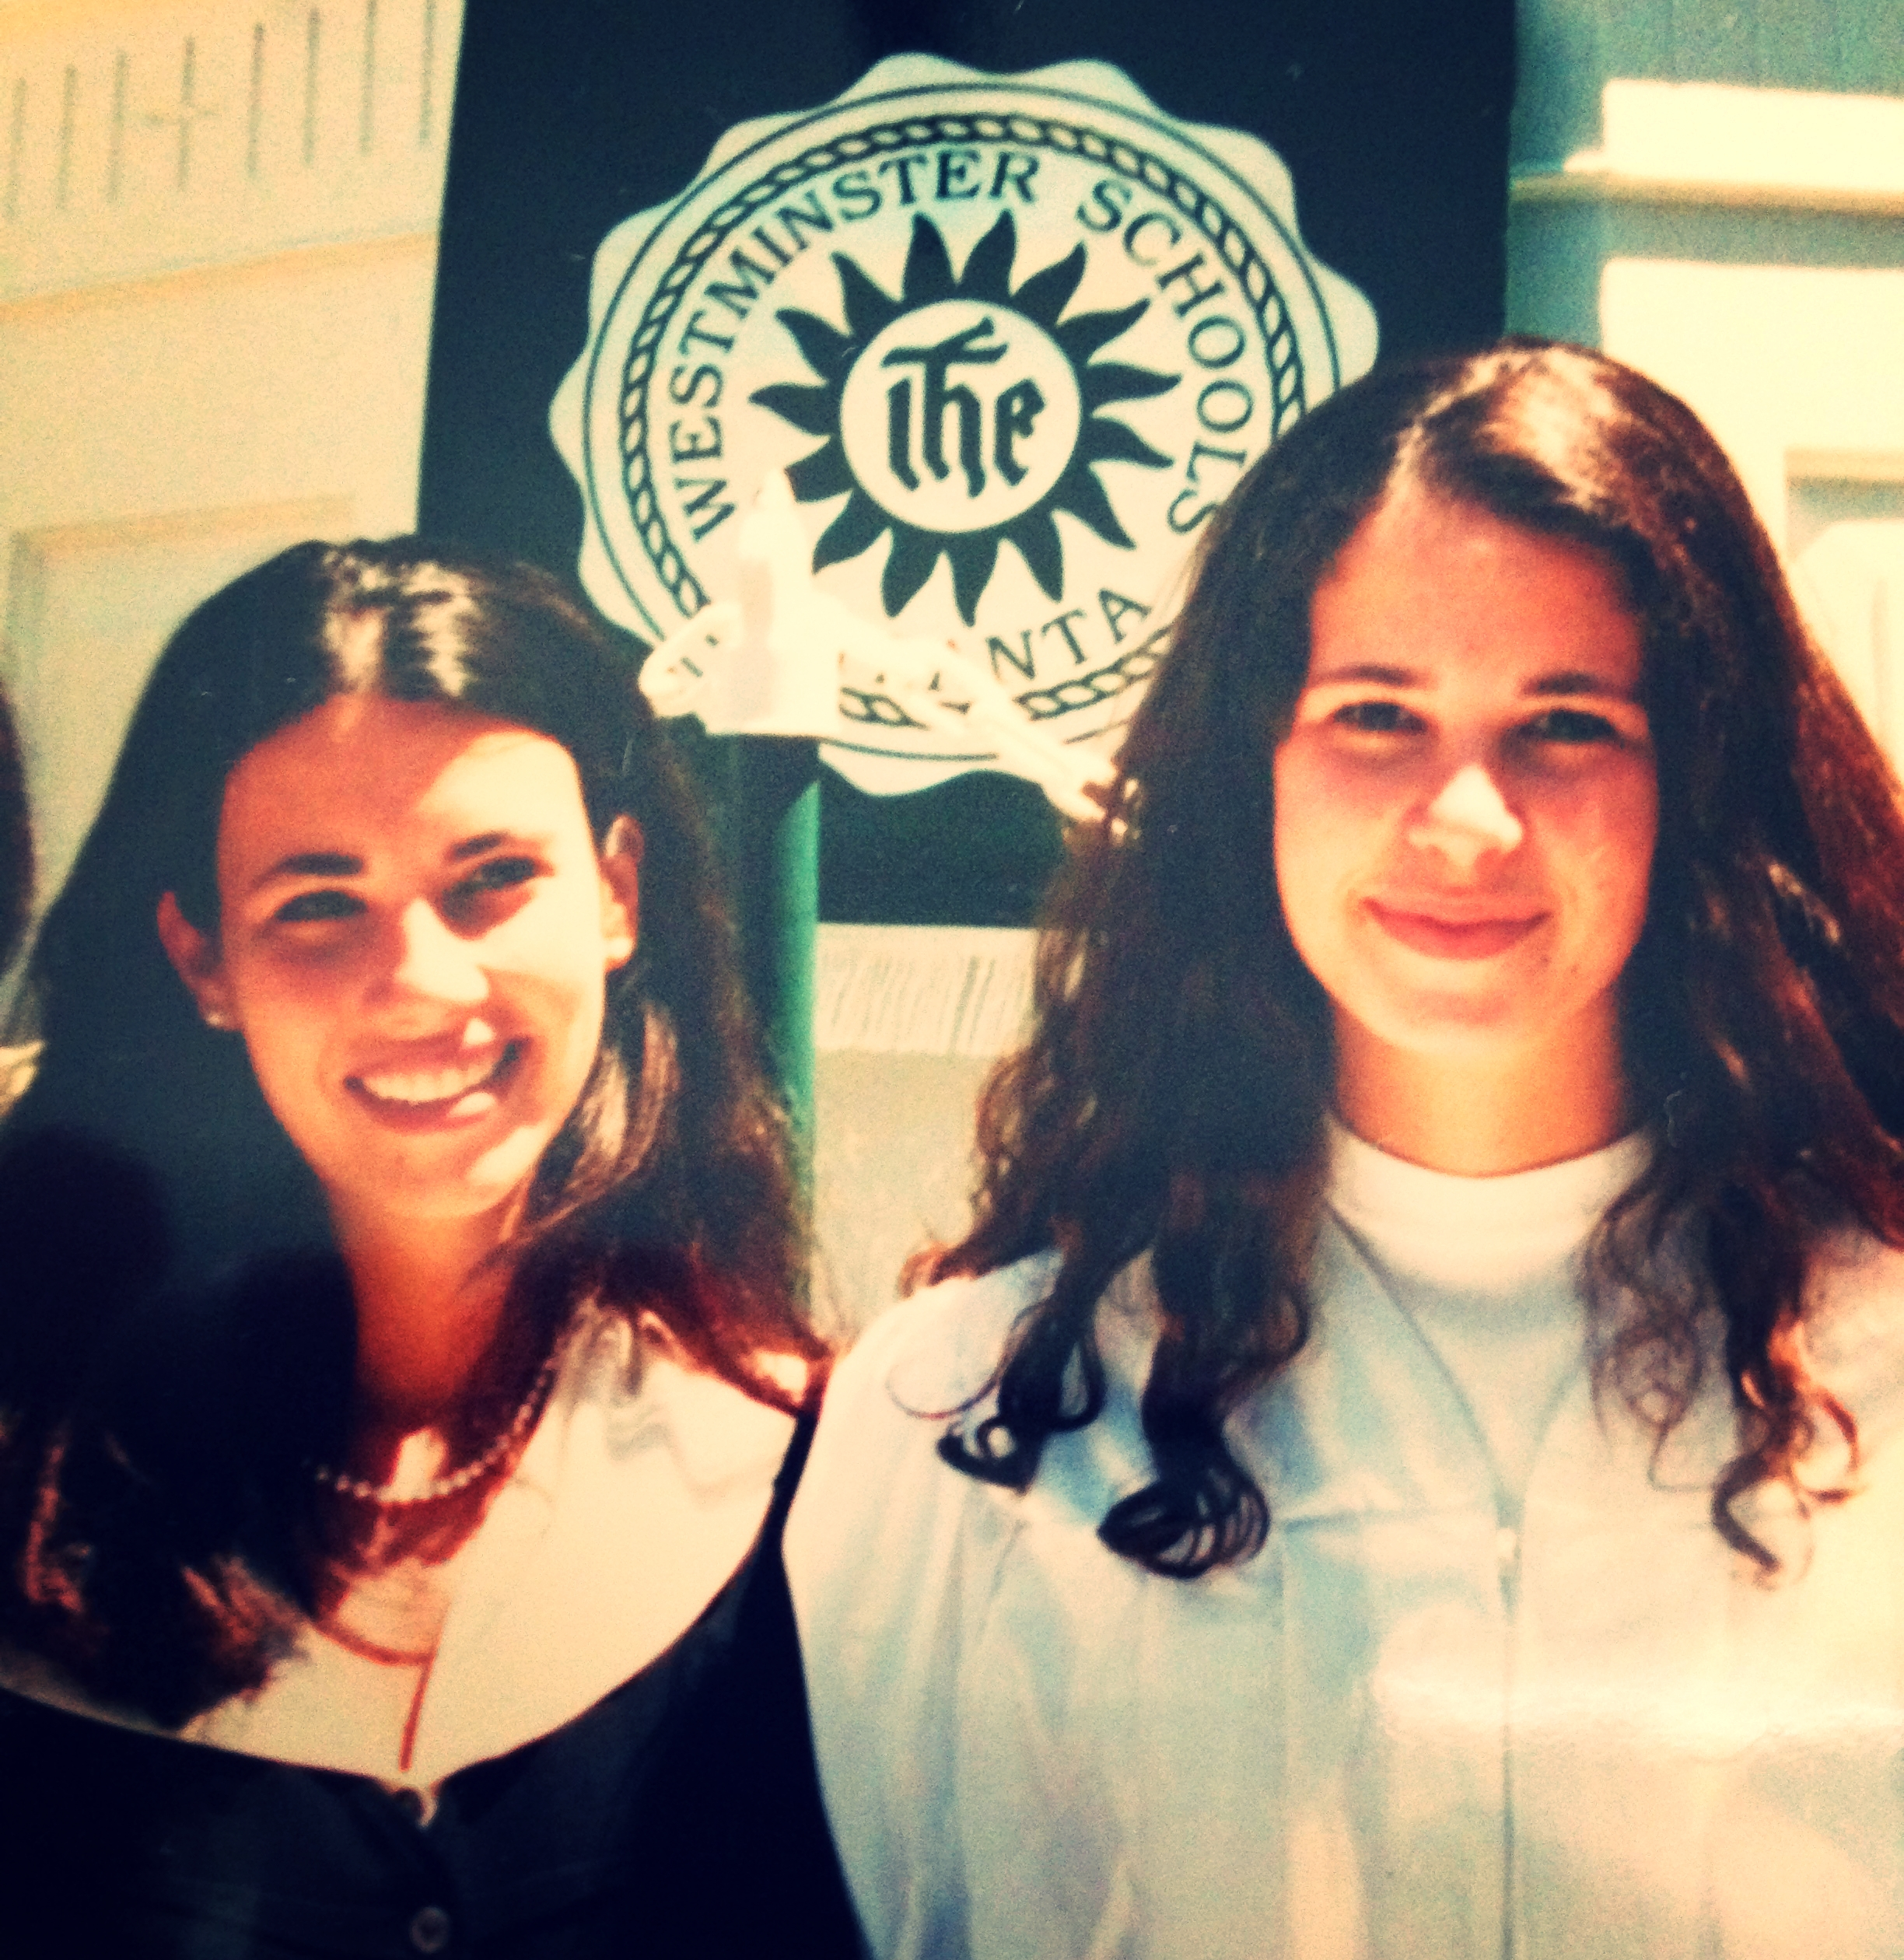 Even though it looks like I'm wearing a clergy-person's outfit, this is my high school graduation day.